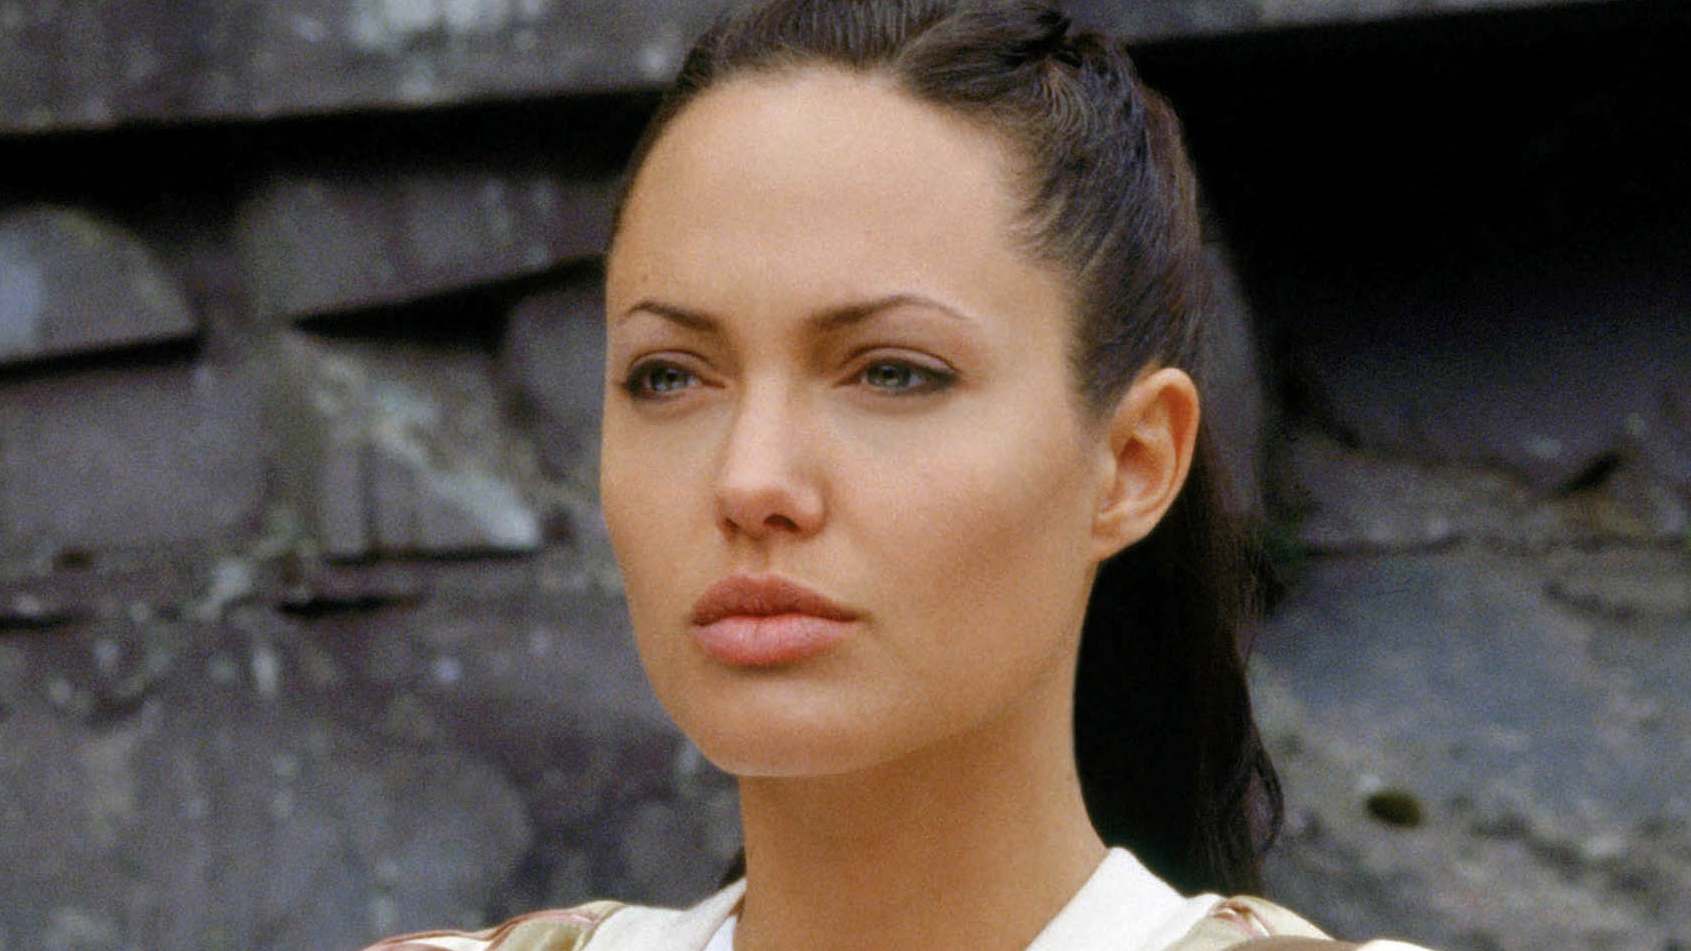 Angelina Jolie Made A Movie So Bad It Made An Iconic Director Give Up On Directing